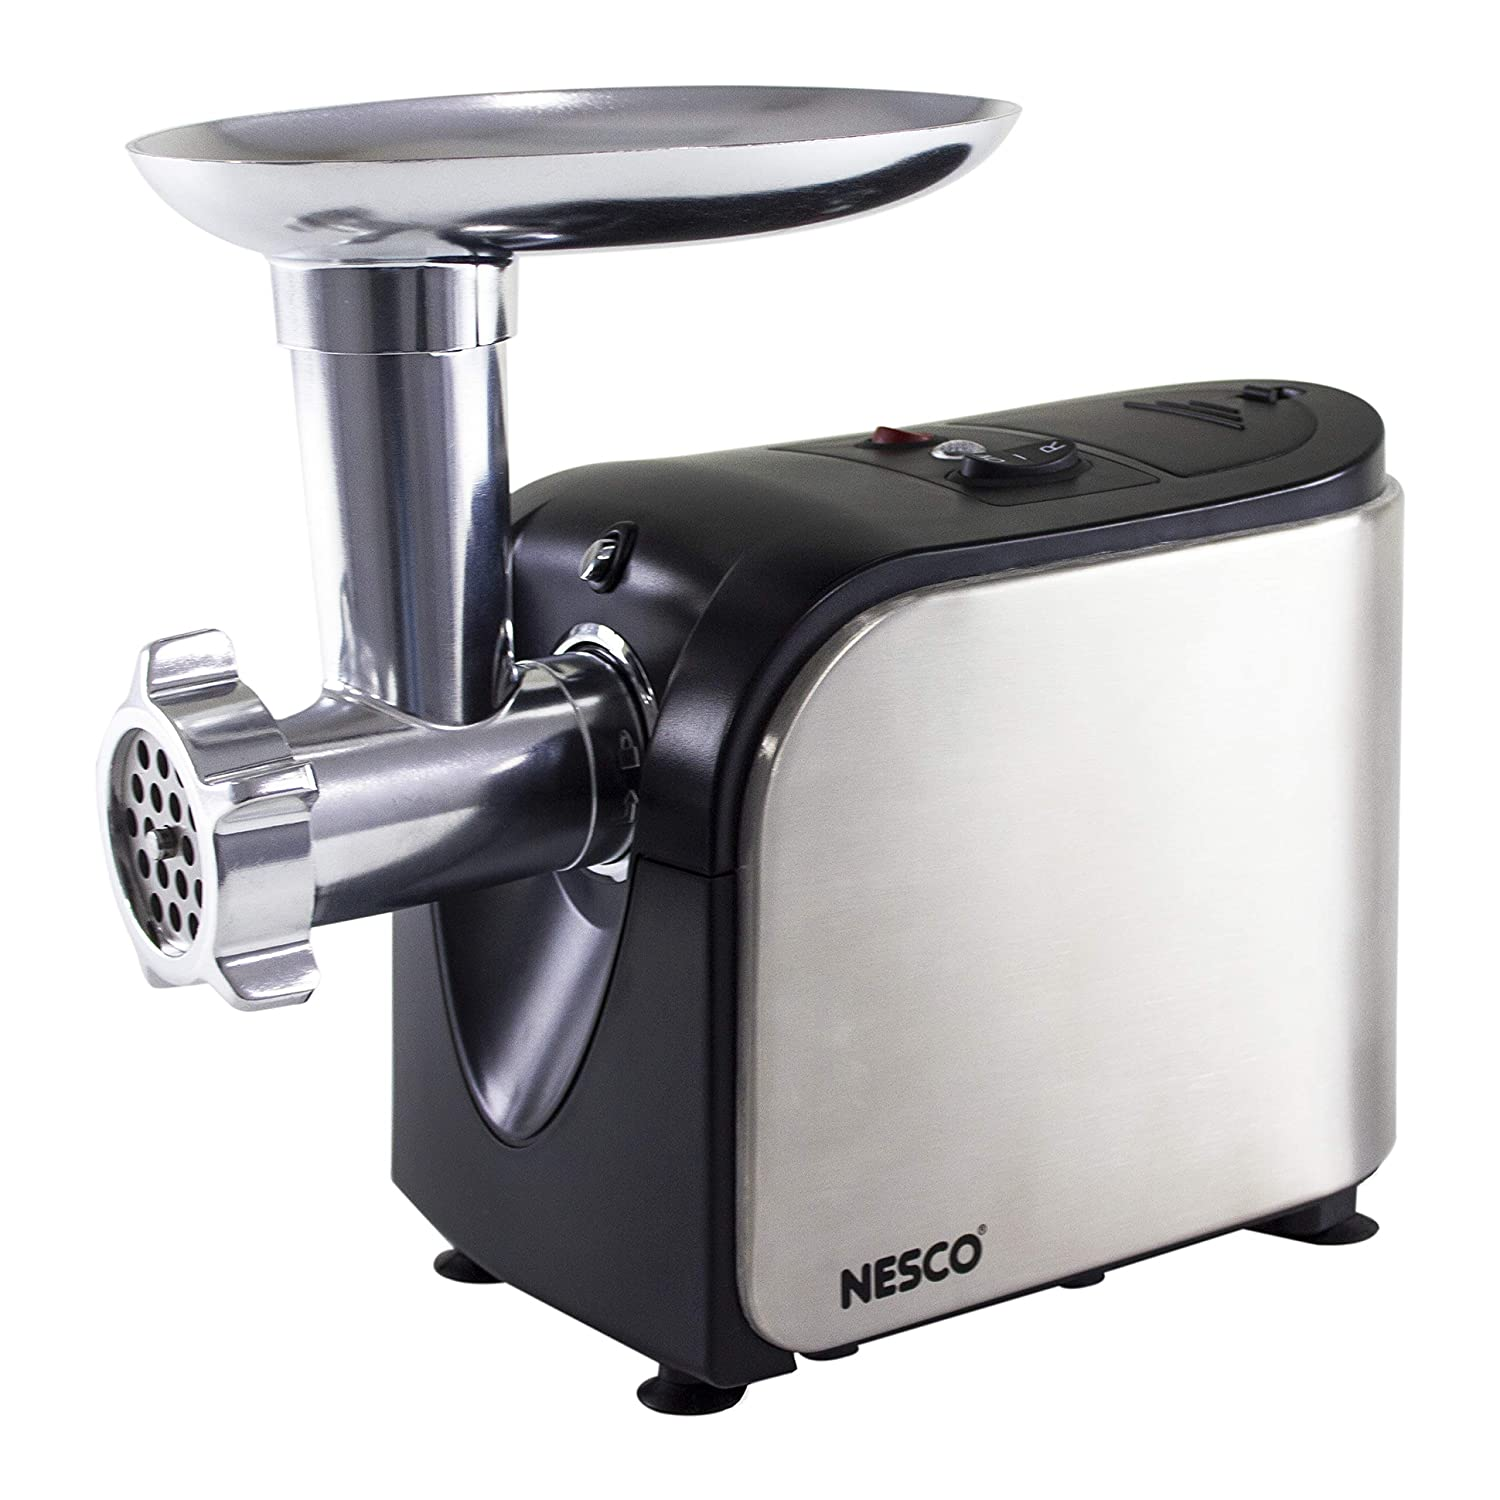 NESCO FG-180, Food Grinder, Stainless Steel, 500 watts